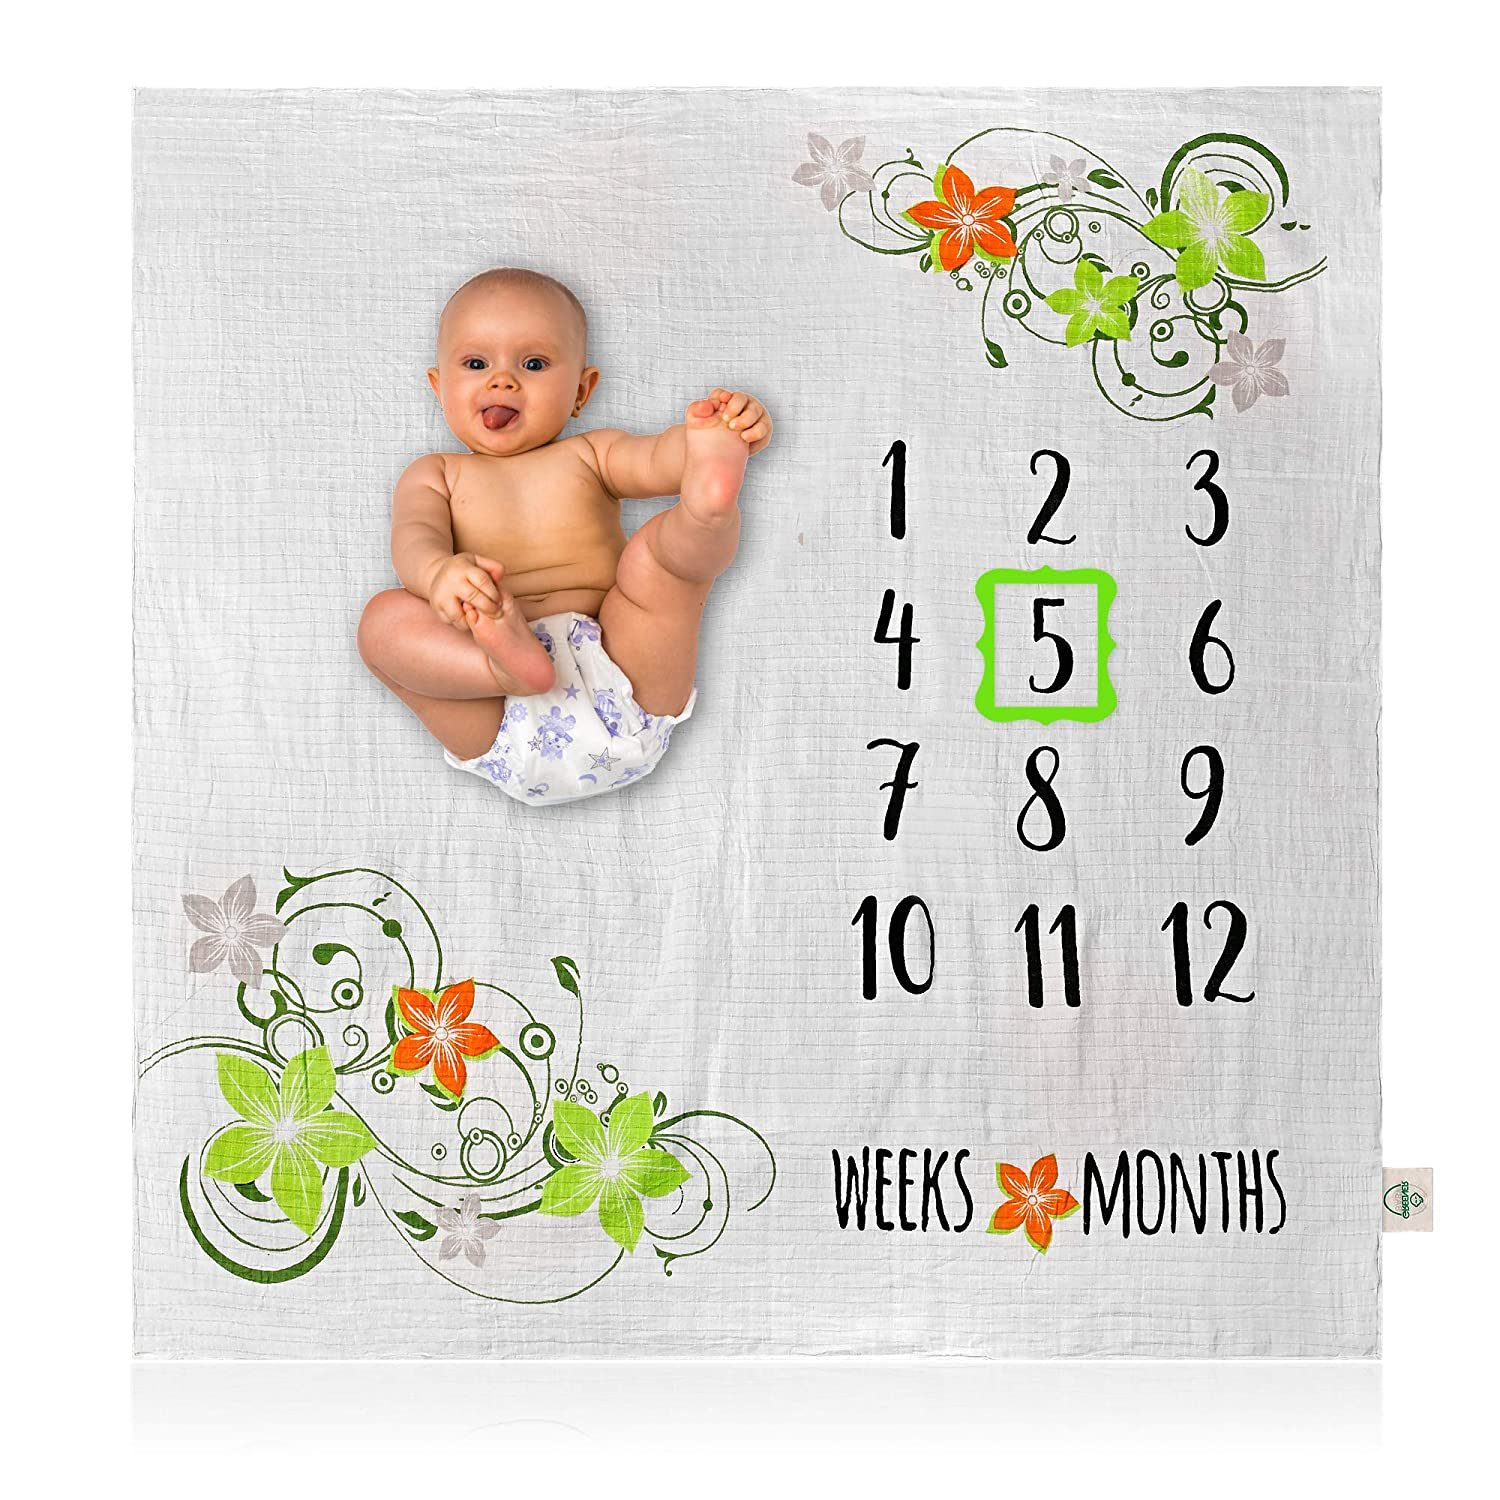 Bamboo Cotton Muslin Swaddle Month Blankets Organic Bamboo Baby Milestone Blanket Personalized Shower Gifts Photo Prop for Yearly Girl or Boy Large 47 X 47 Large 47 X 47 Greener Baby Monthly or Weekly Pictures